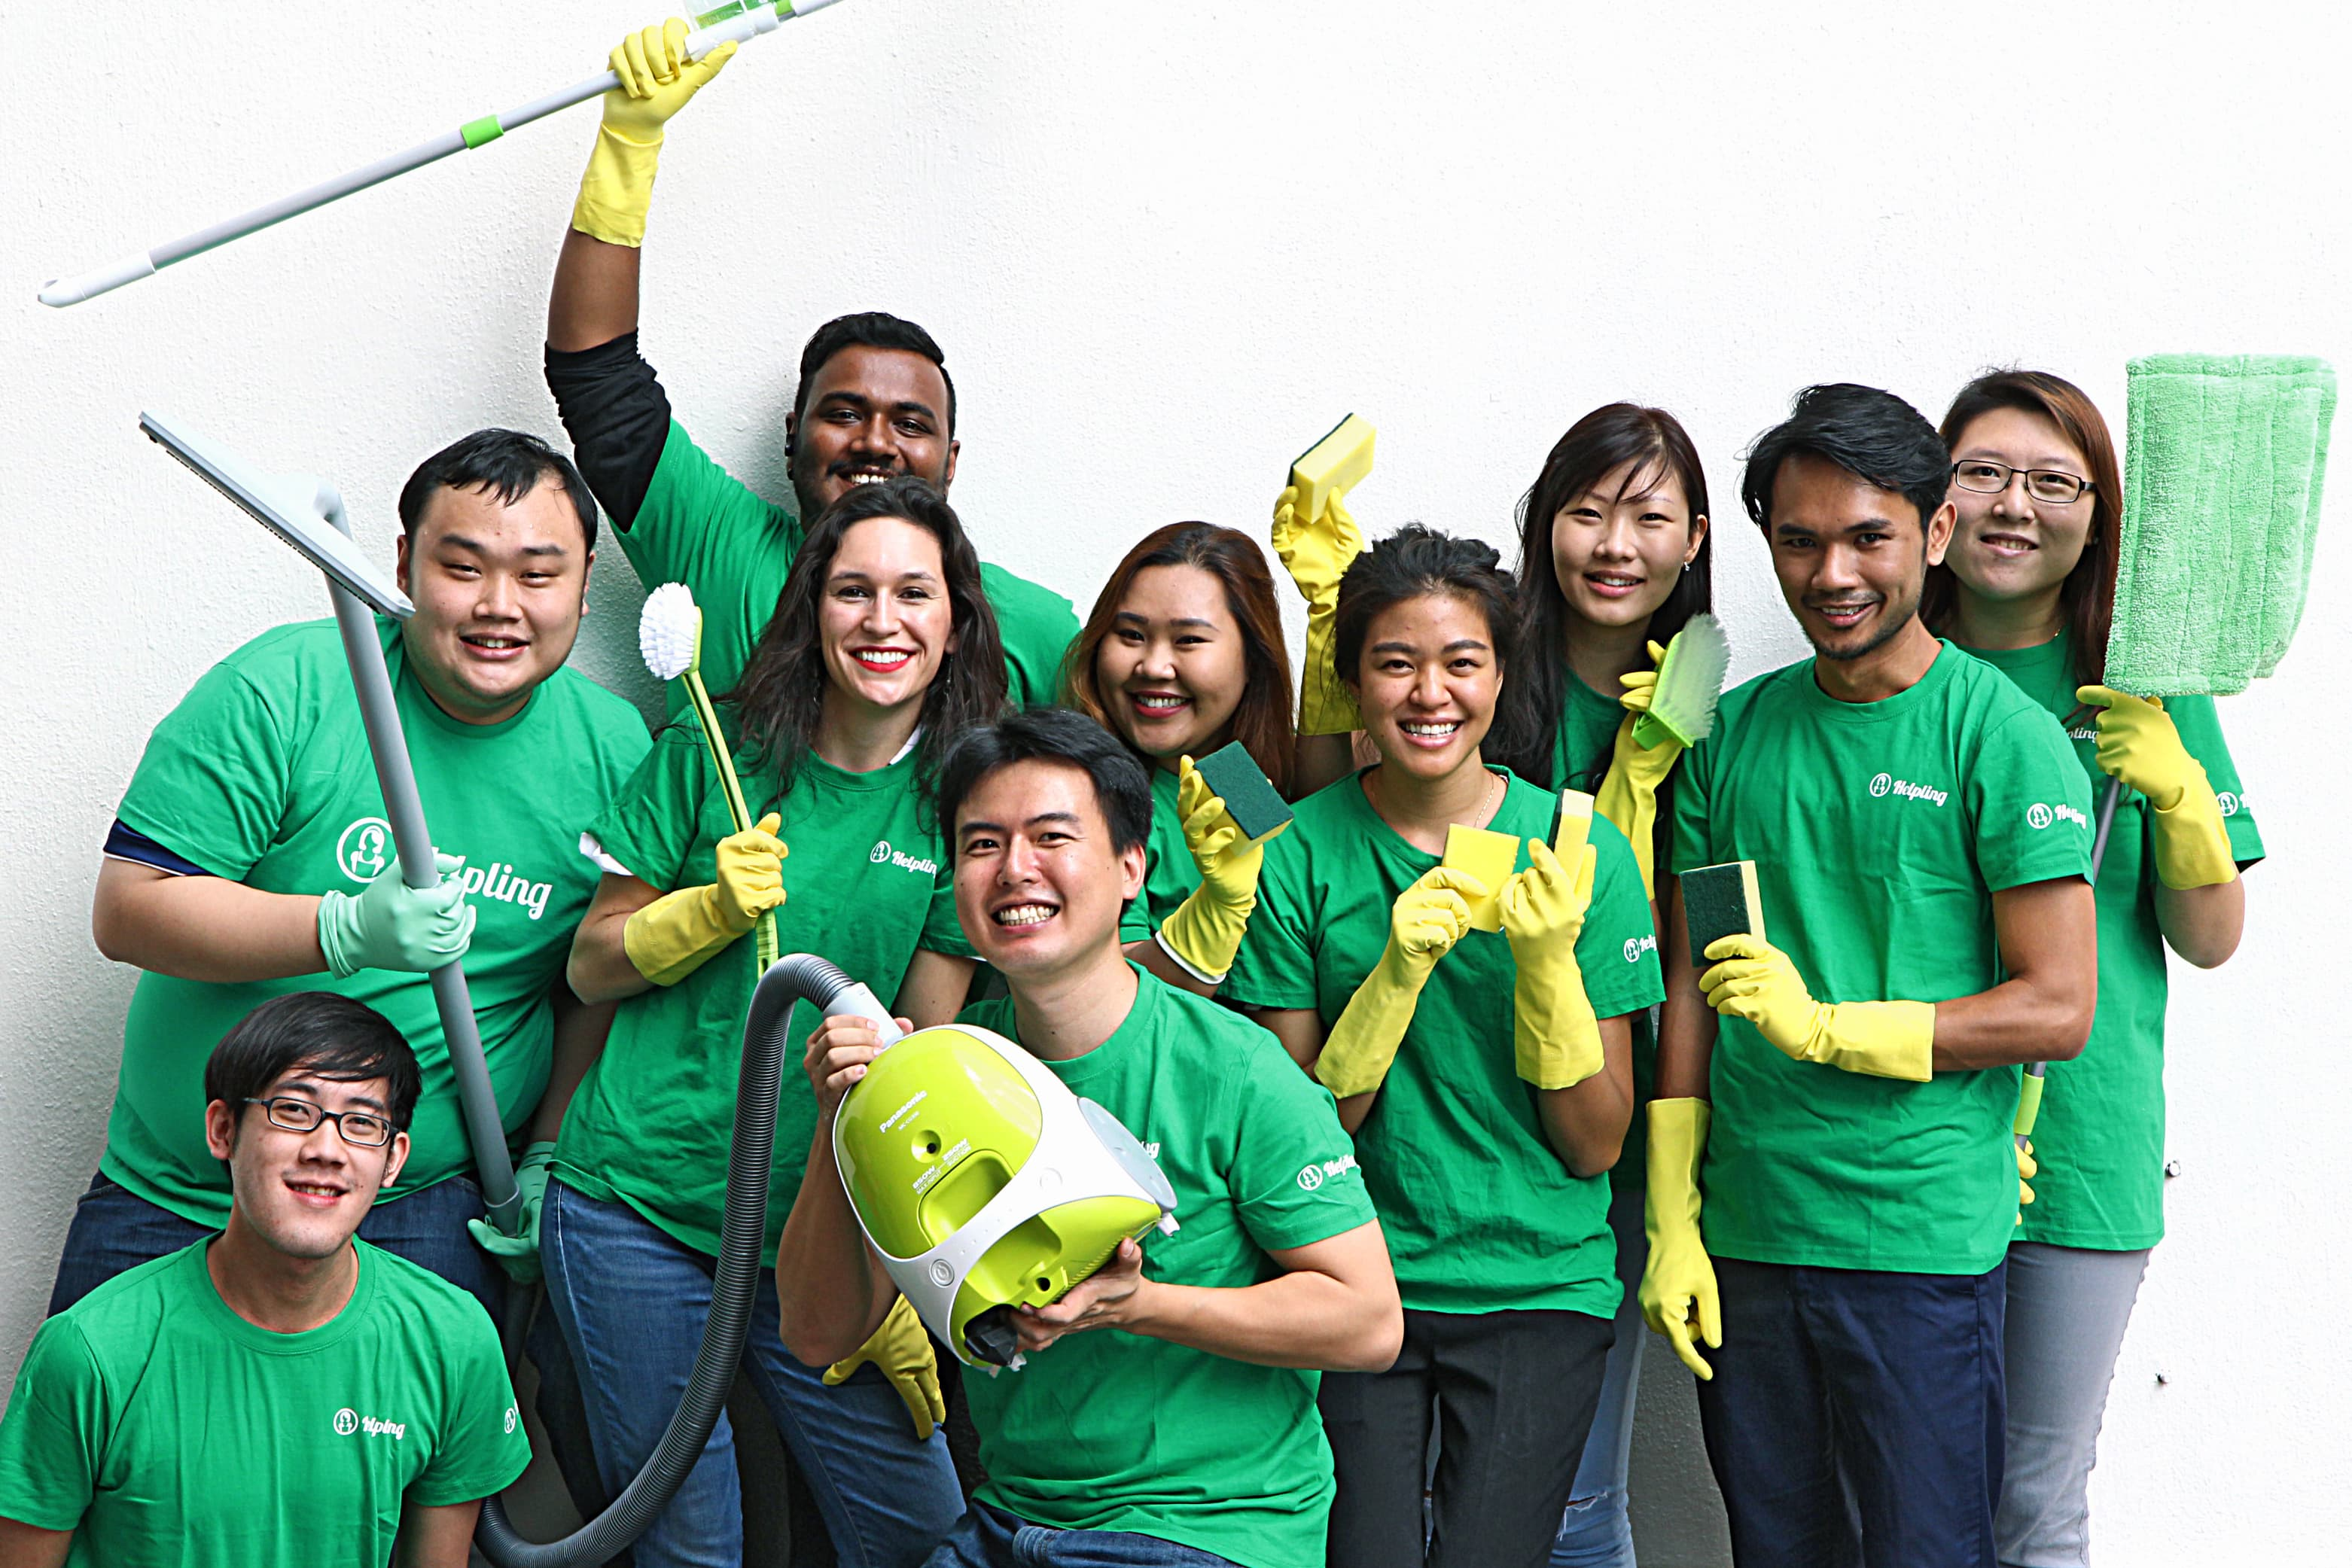 Helpling, the latest disruptor app for cleaners